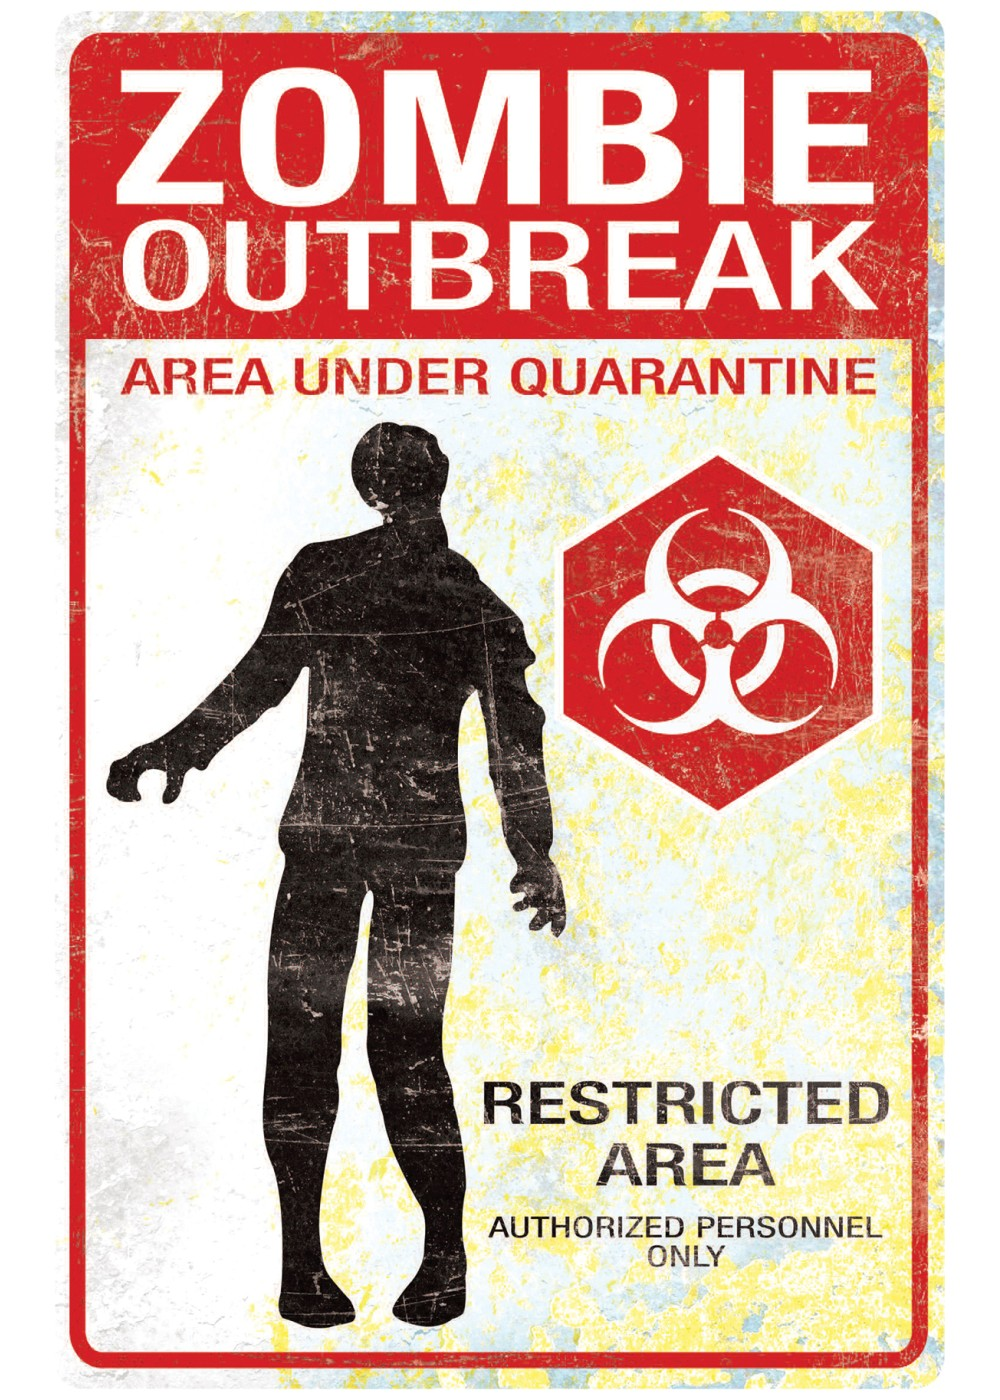 Princess Wallpaper For Girls Zombie Outbreak Sign Decorations